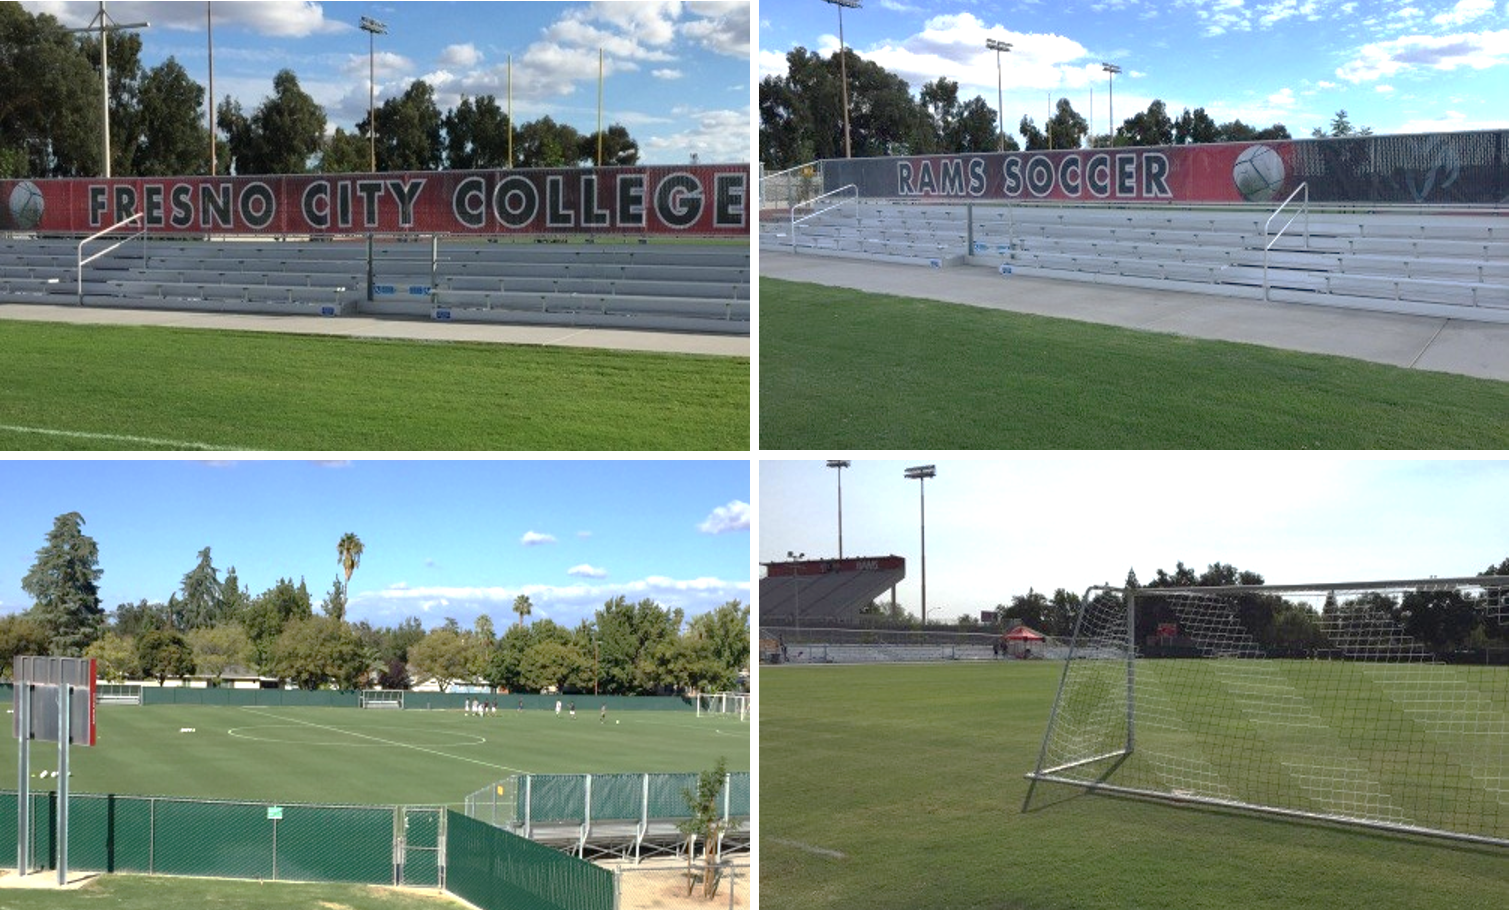 various photos of the Ram's Soccer Field.